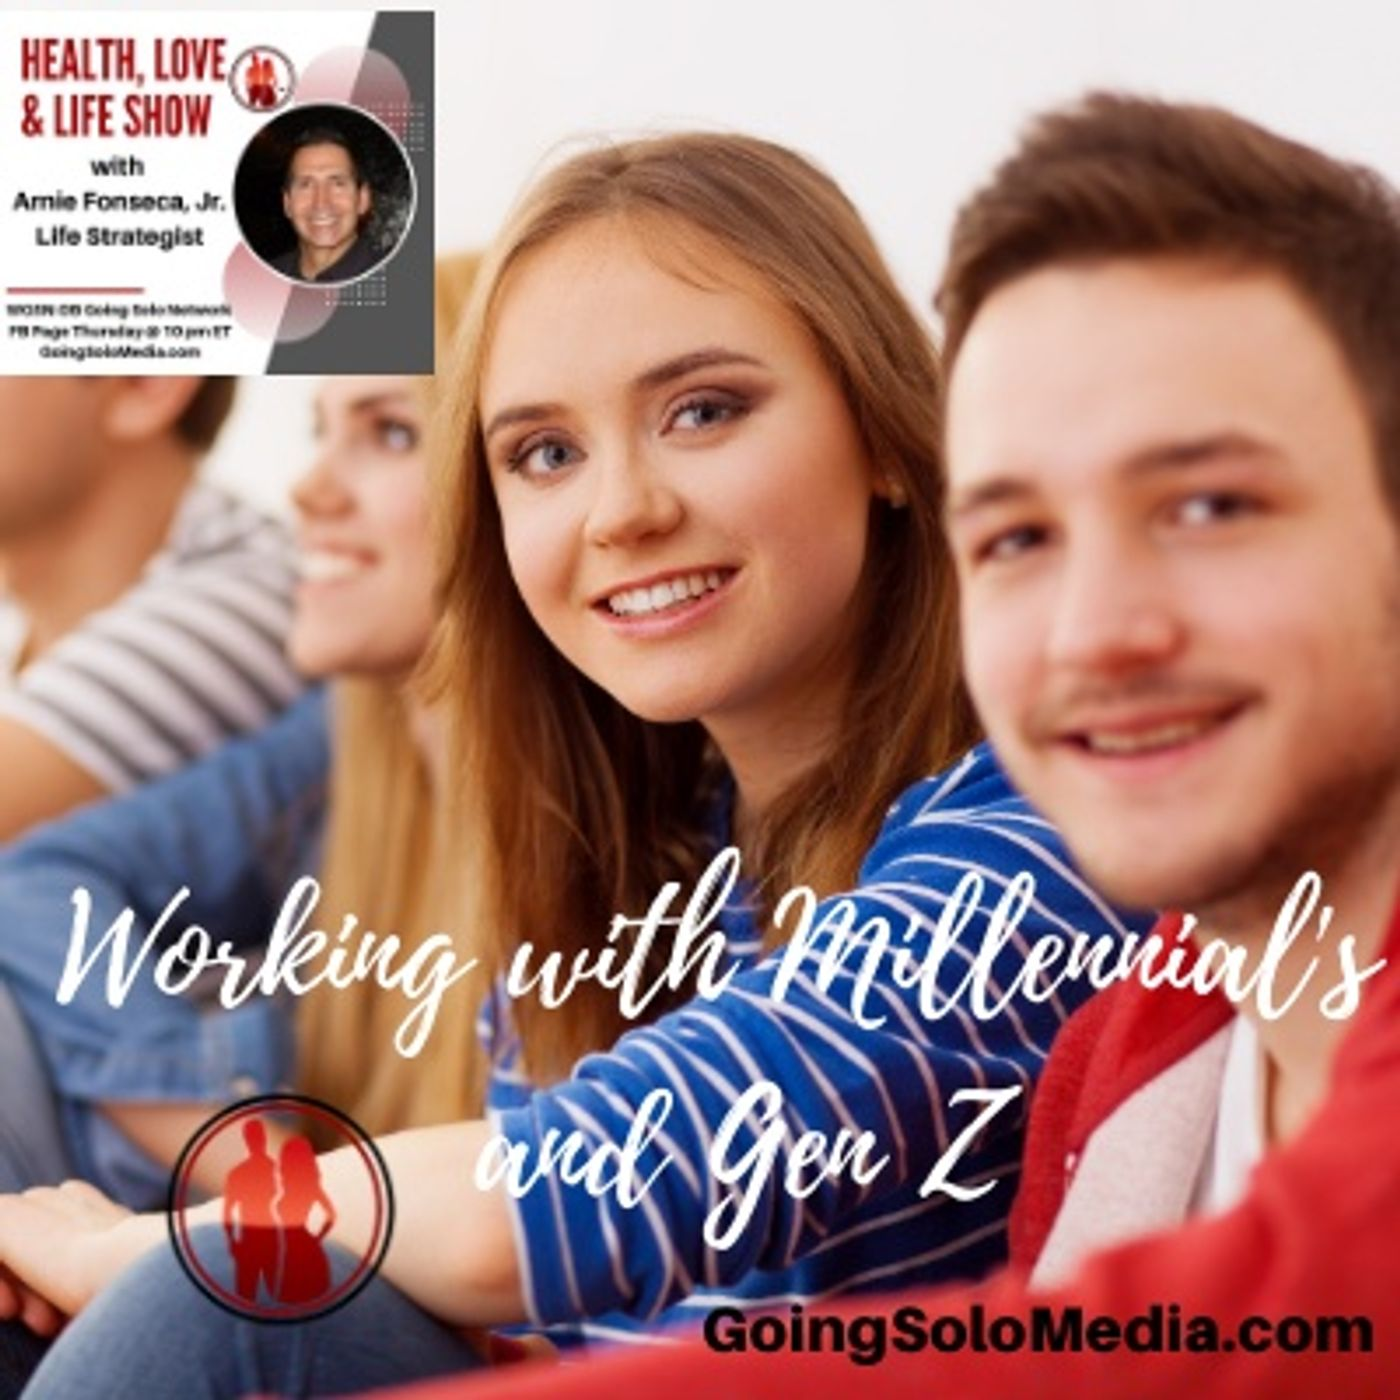 Working with Millennial's and Gen Z